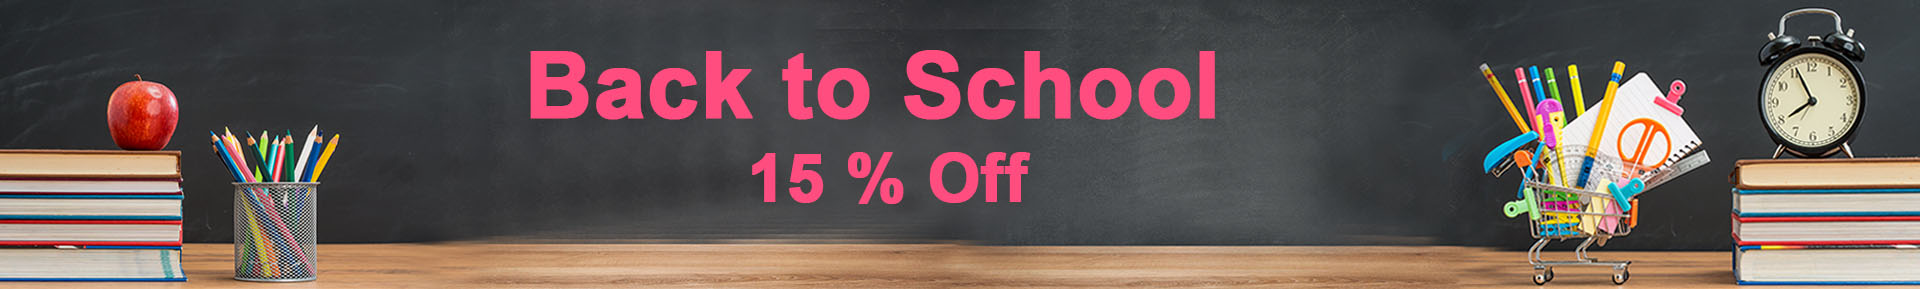 Back to School 15% Off